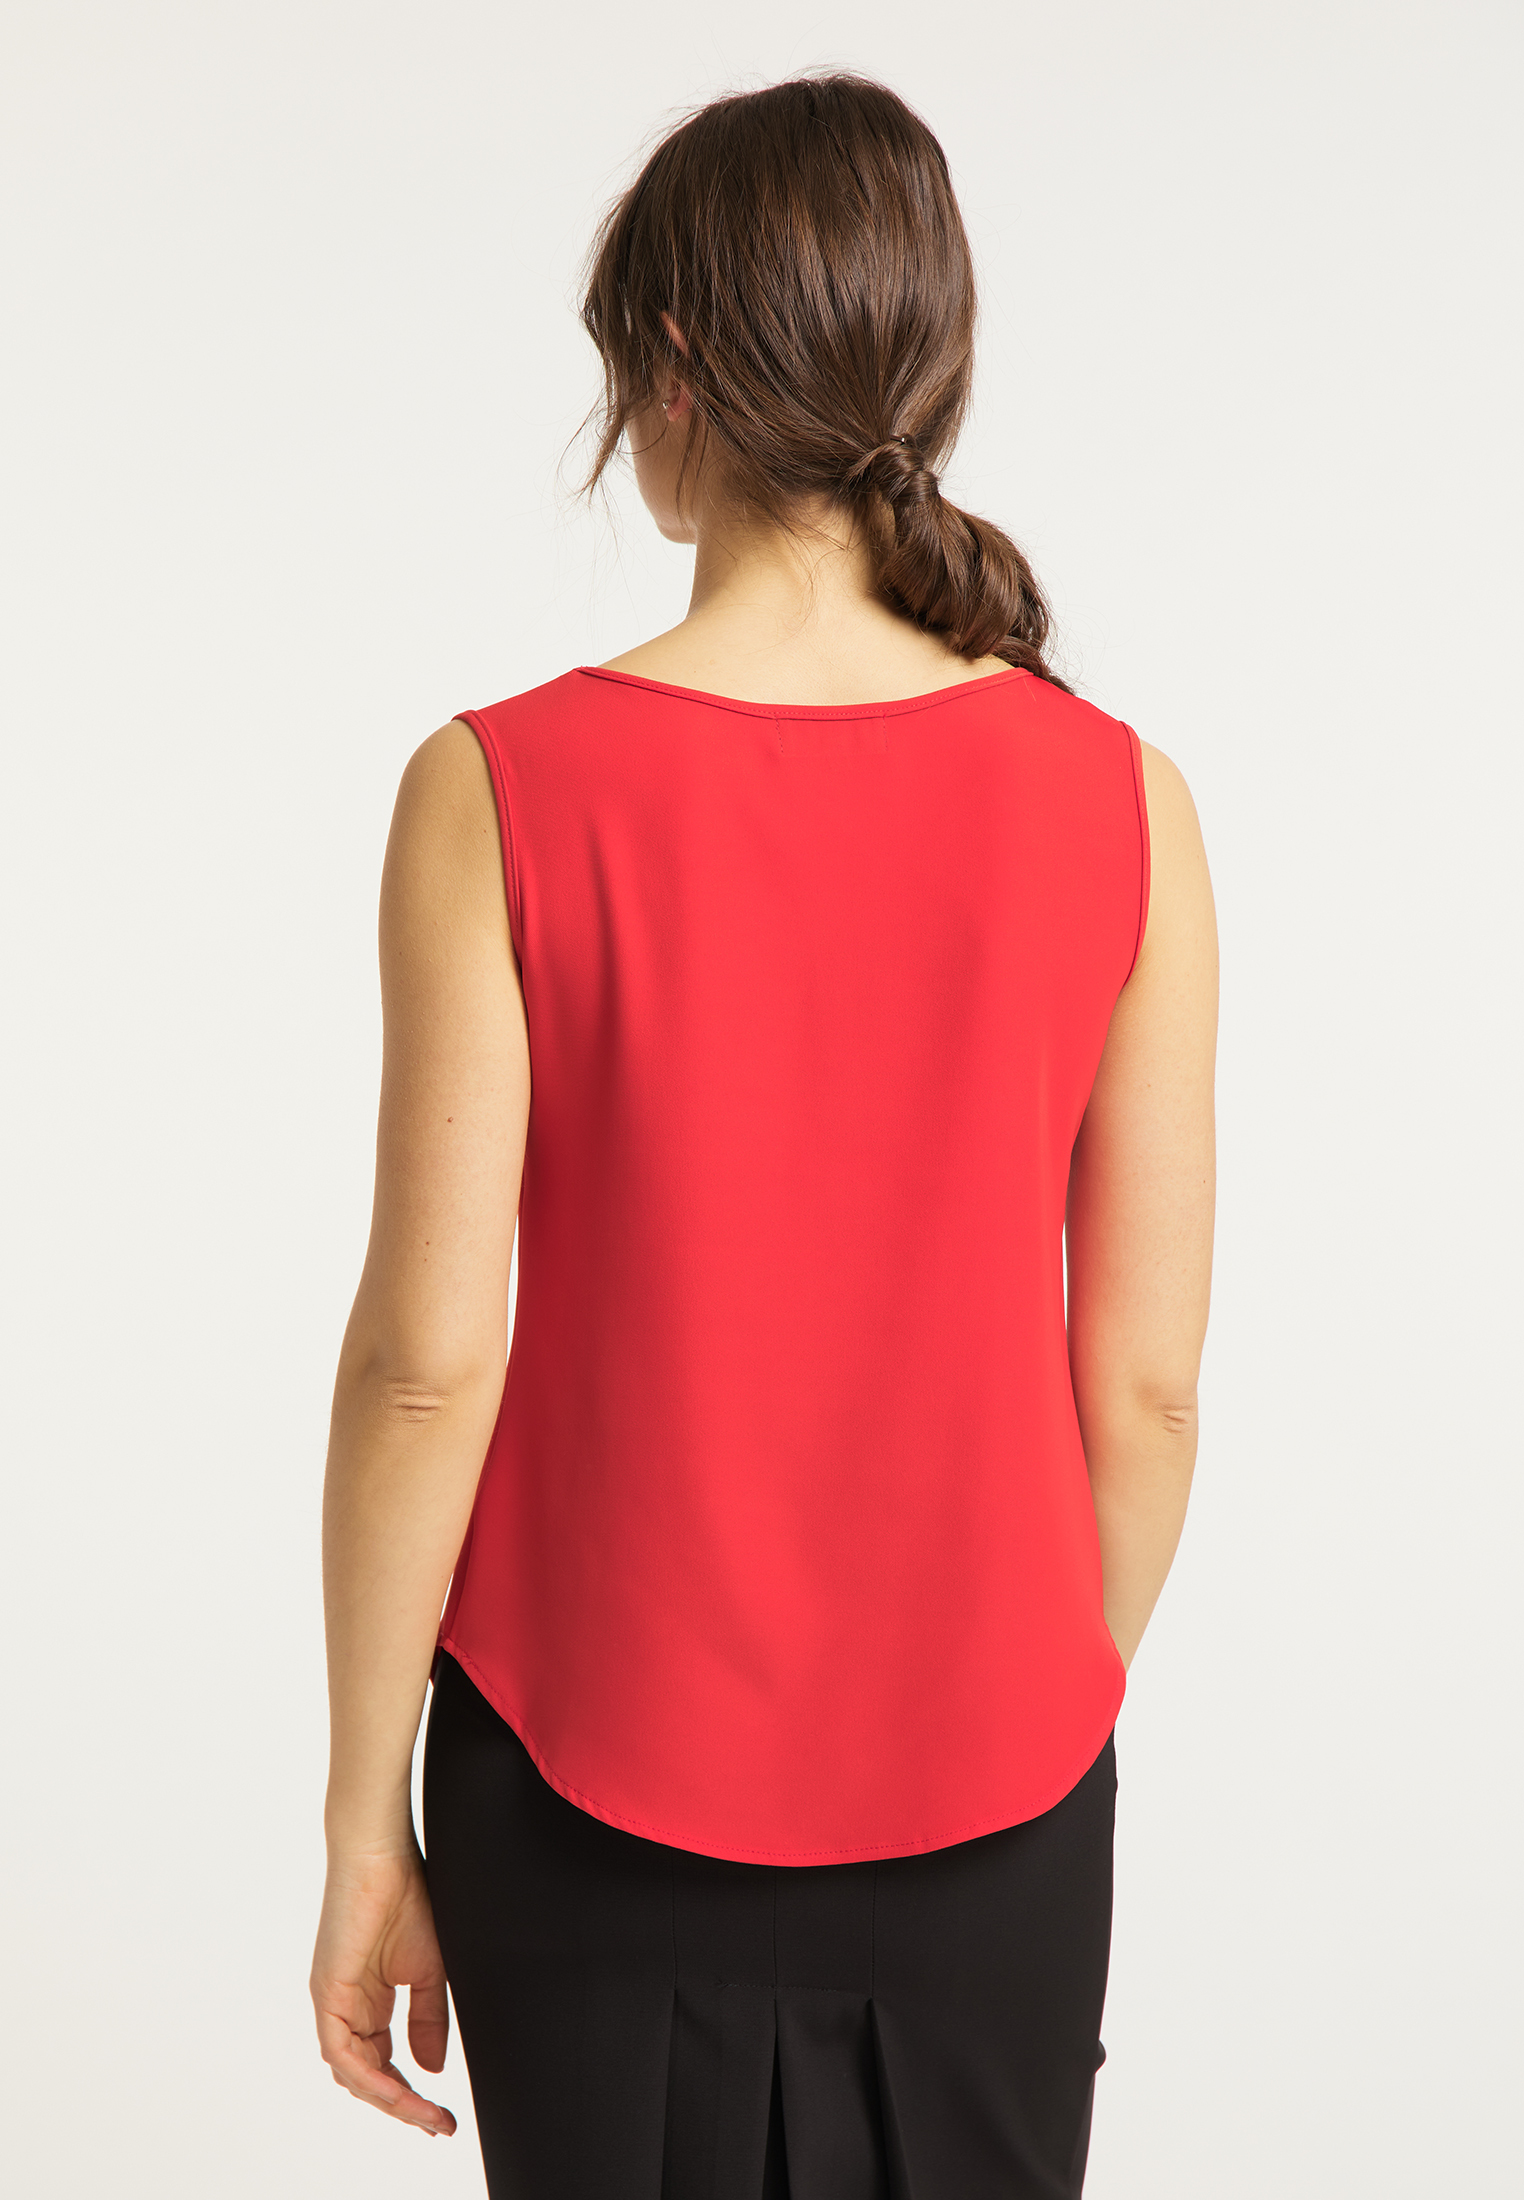 usha BLACK LABEL Top in Rood YV37vwui